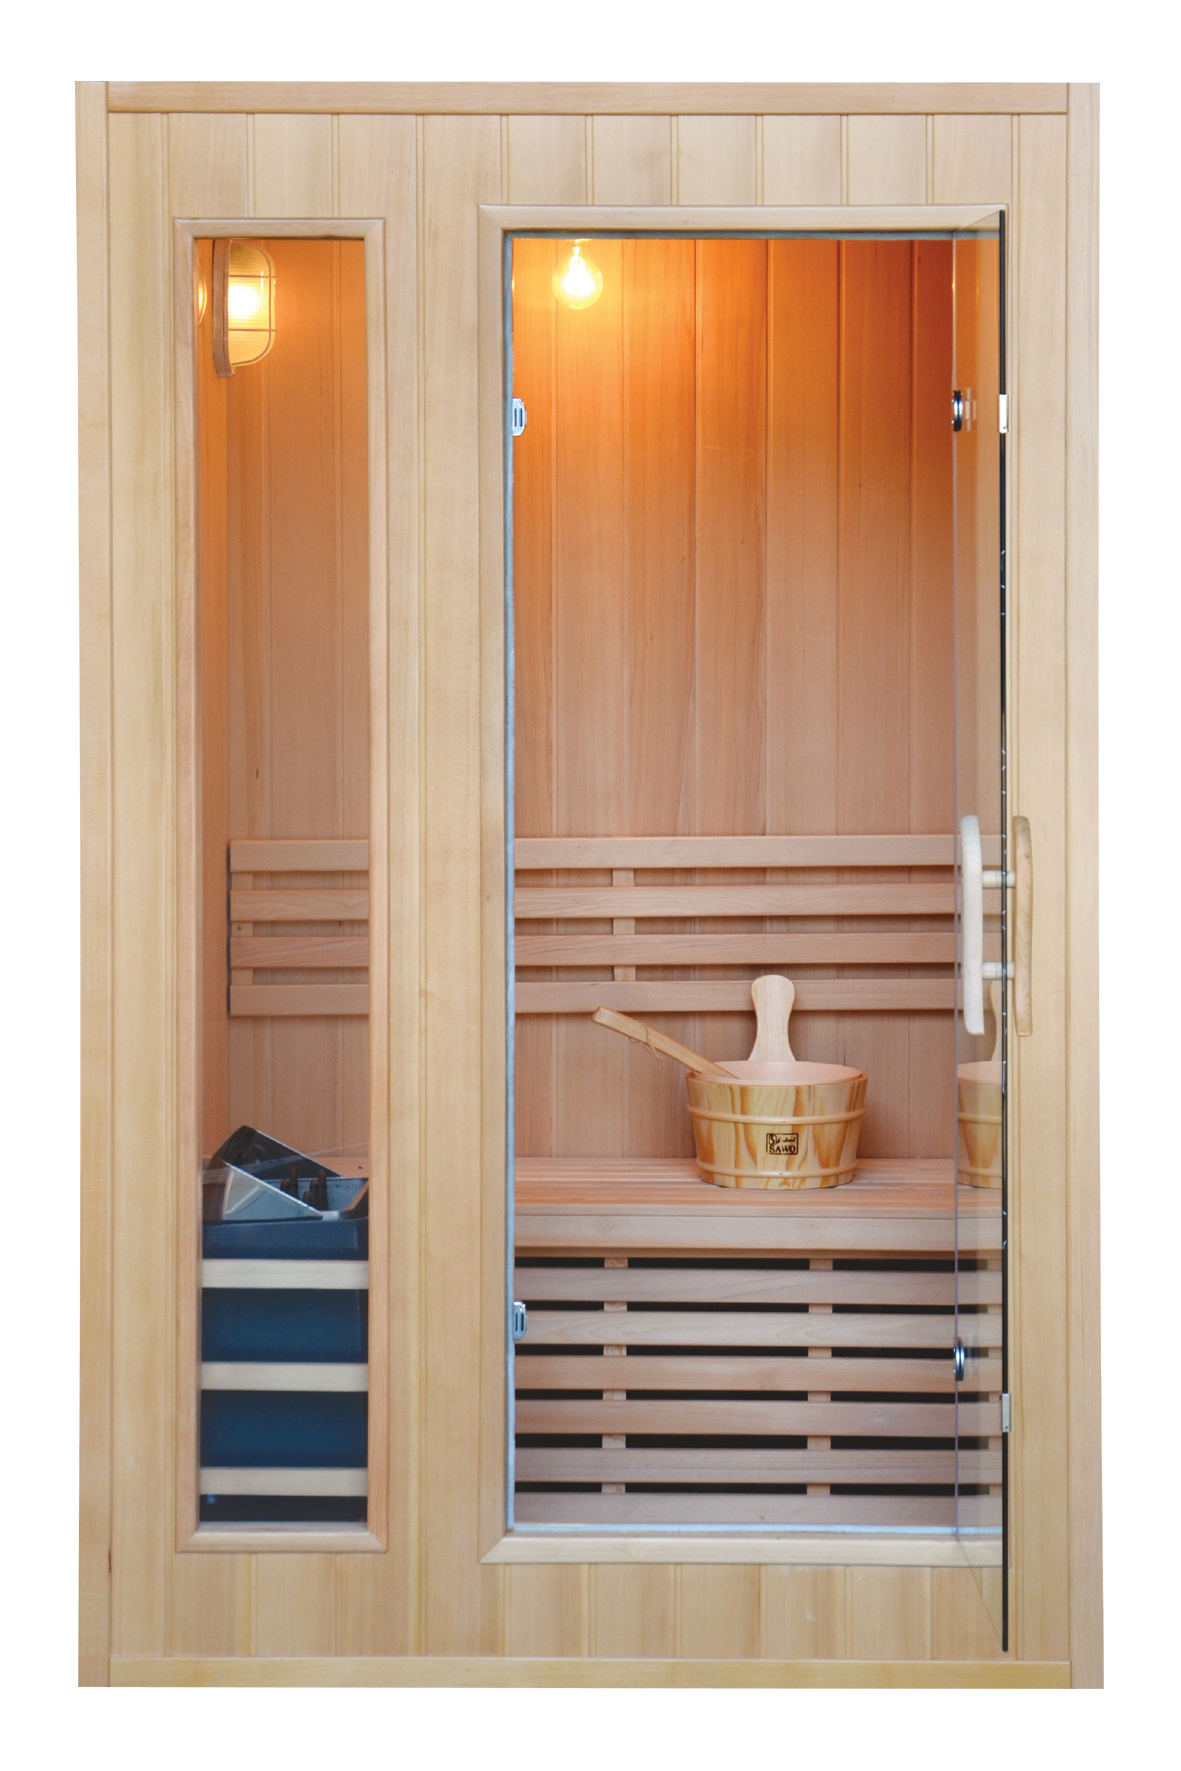 SAUNA Model: LM-S02 Size:1200*1100*1900(mm)Wood: Canadian HemlockHeater: Sawo Stove + Stones. Power: 3000 W Capacity: 2 Persons